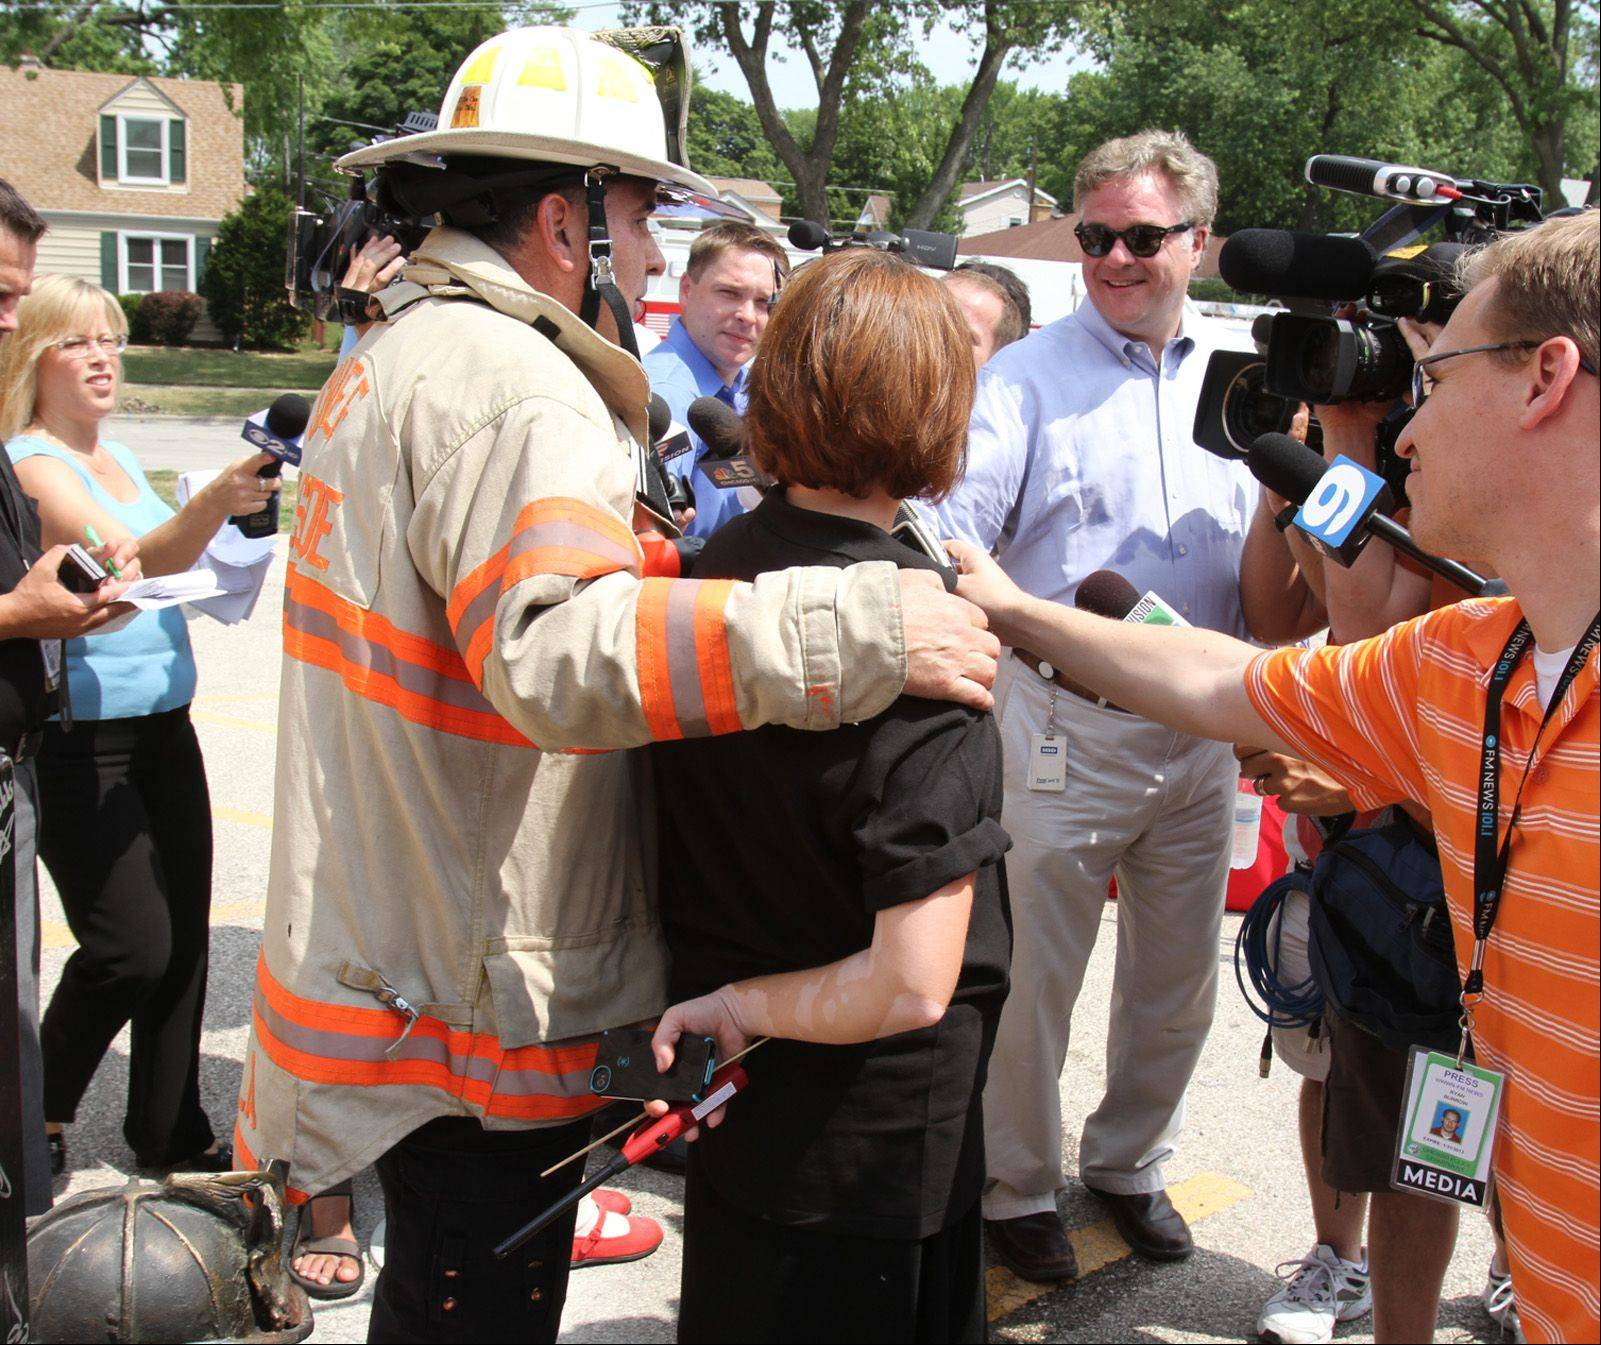 Michael Kuryla, president of Cook County Fire Chiefs Association consoles Laura Barros, assistant executive director at the Illinois Fire Safety Alliance in Mount Prospect, as she answers reporters� questions after being burned during a fireworks safety demonstration.